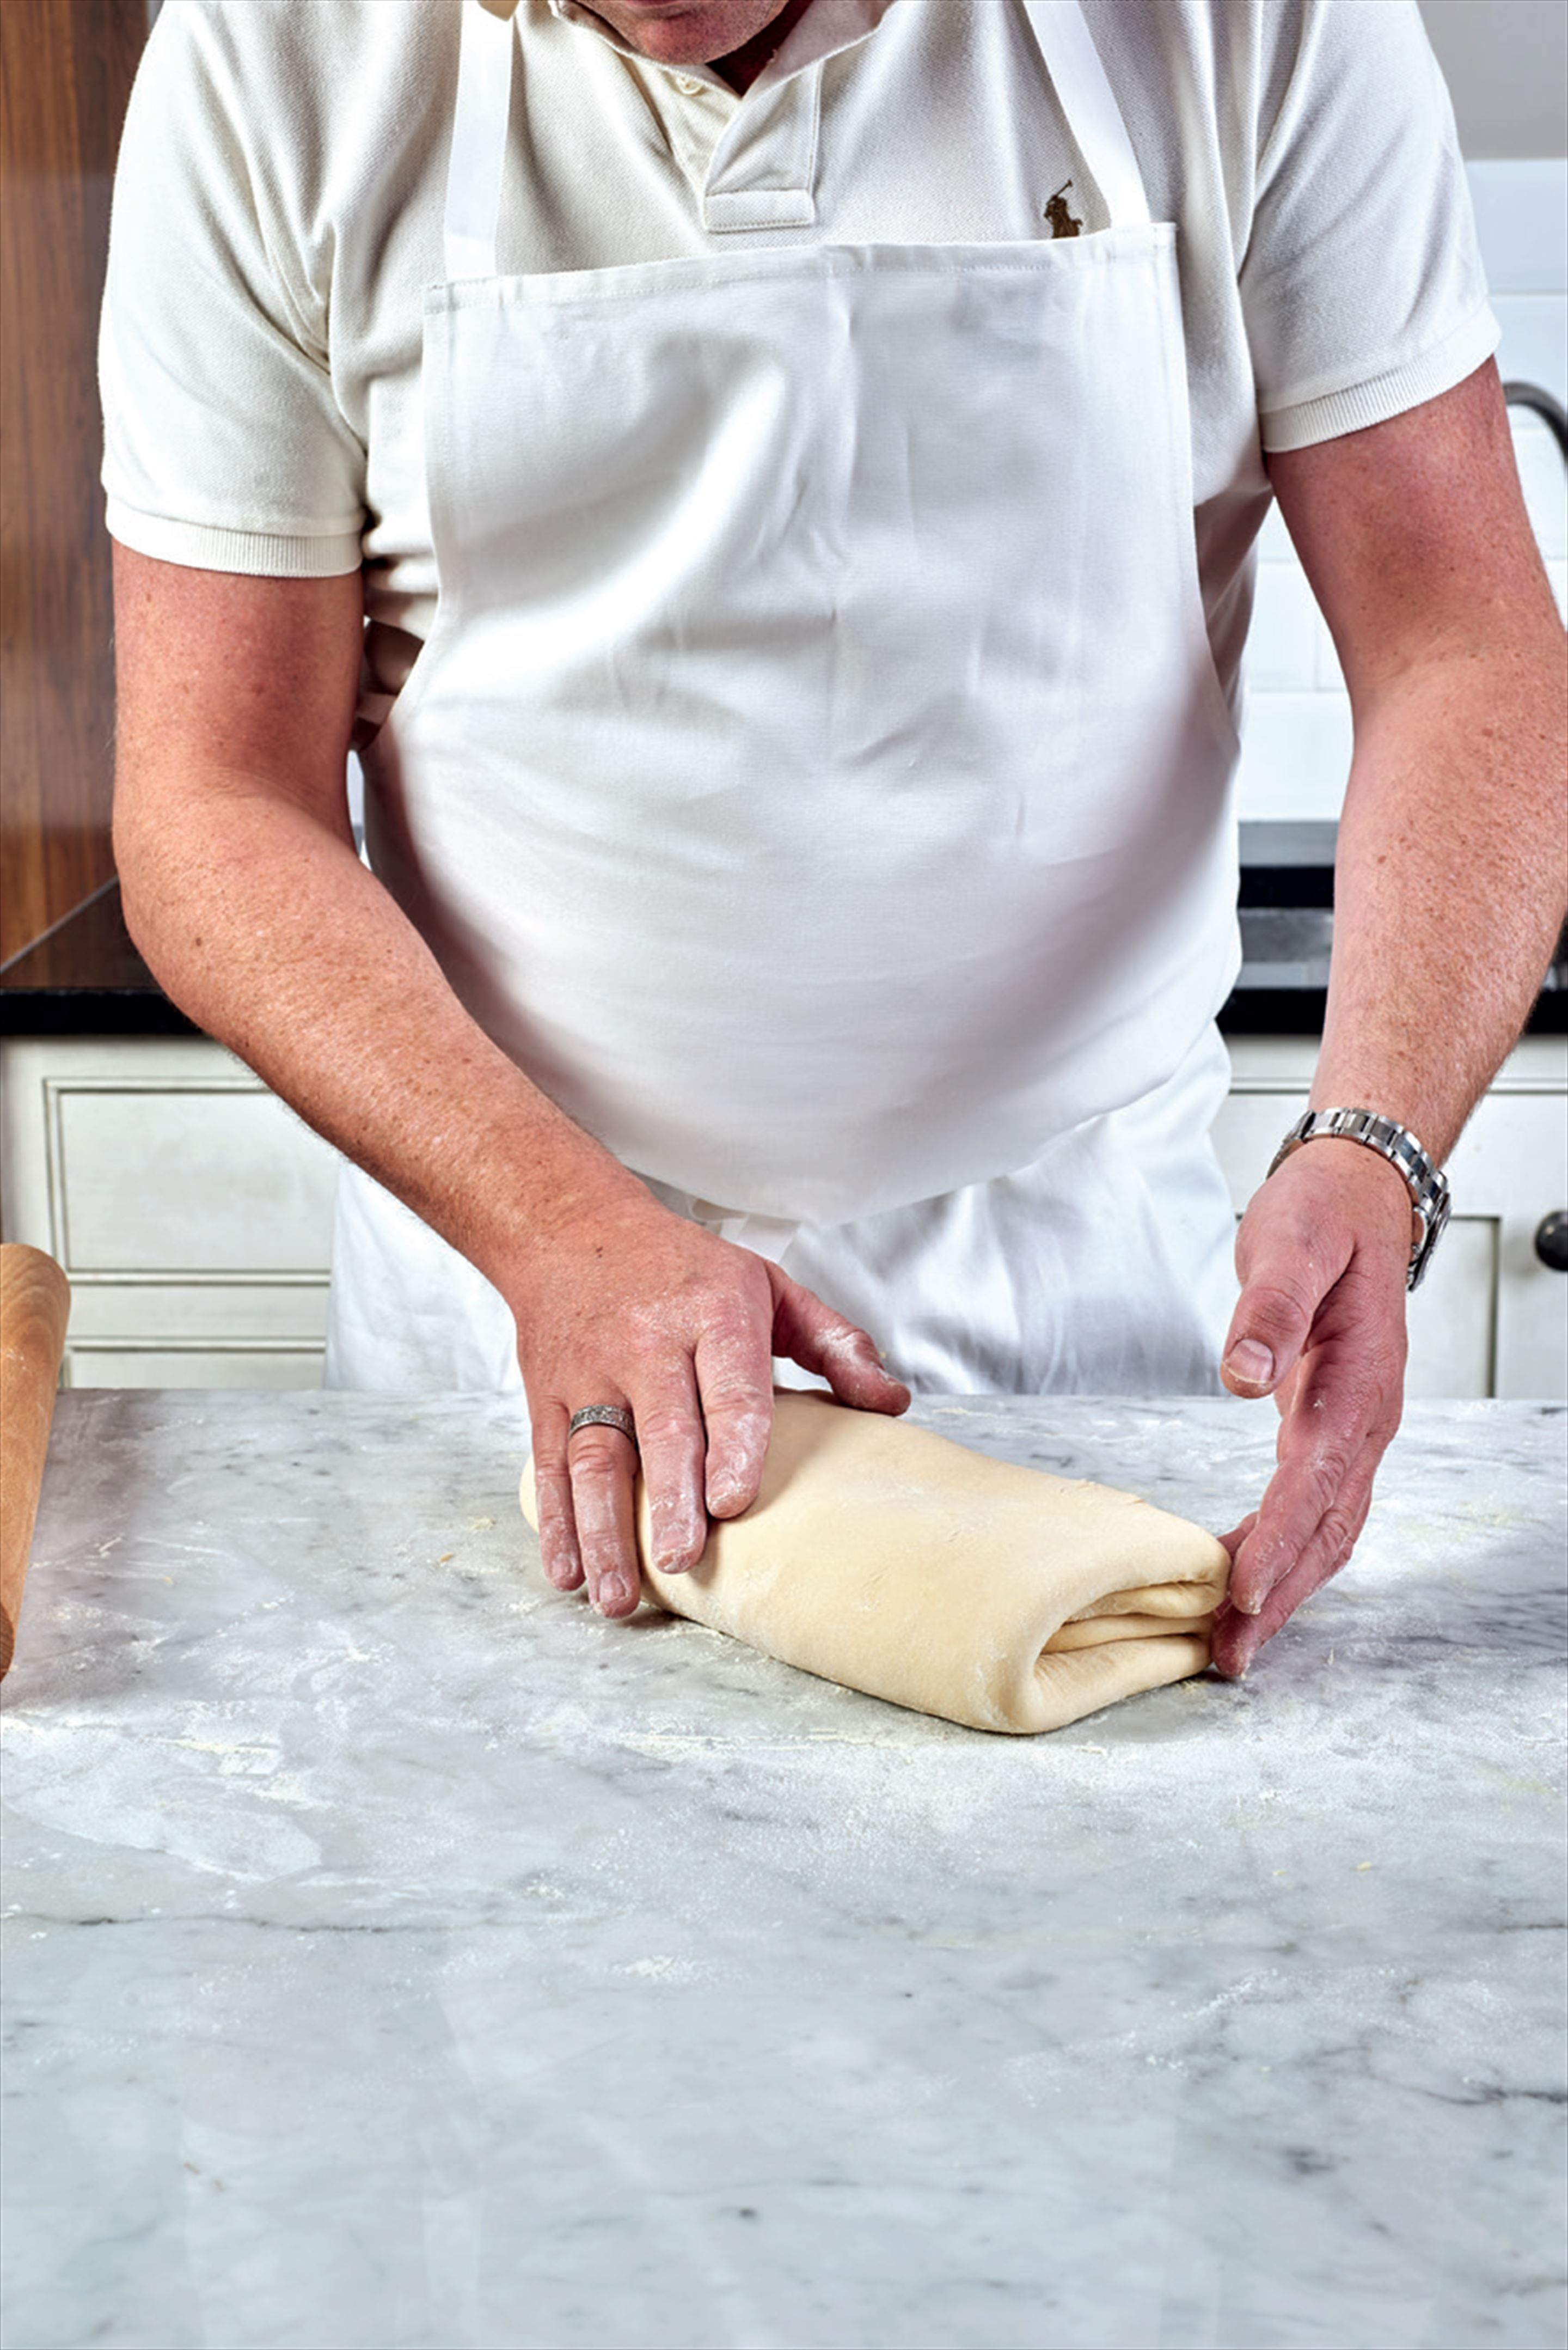 Laminated enriched yeast dough